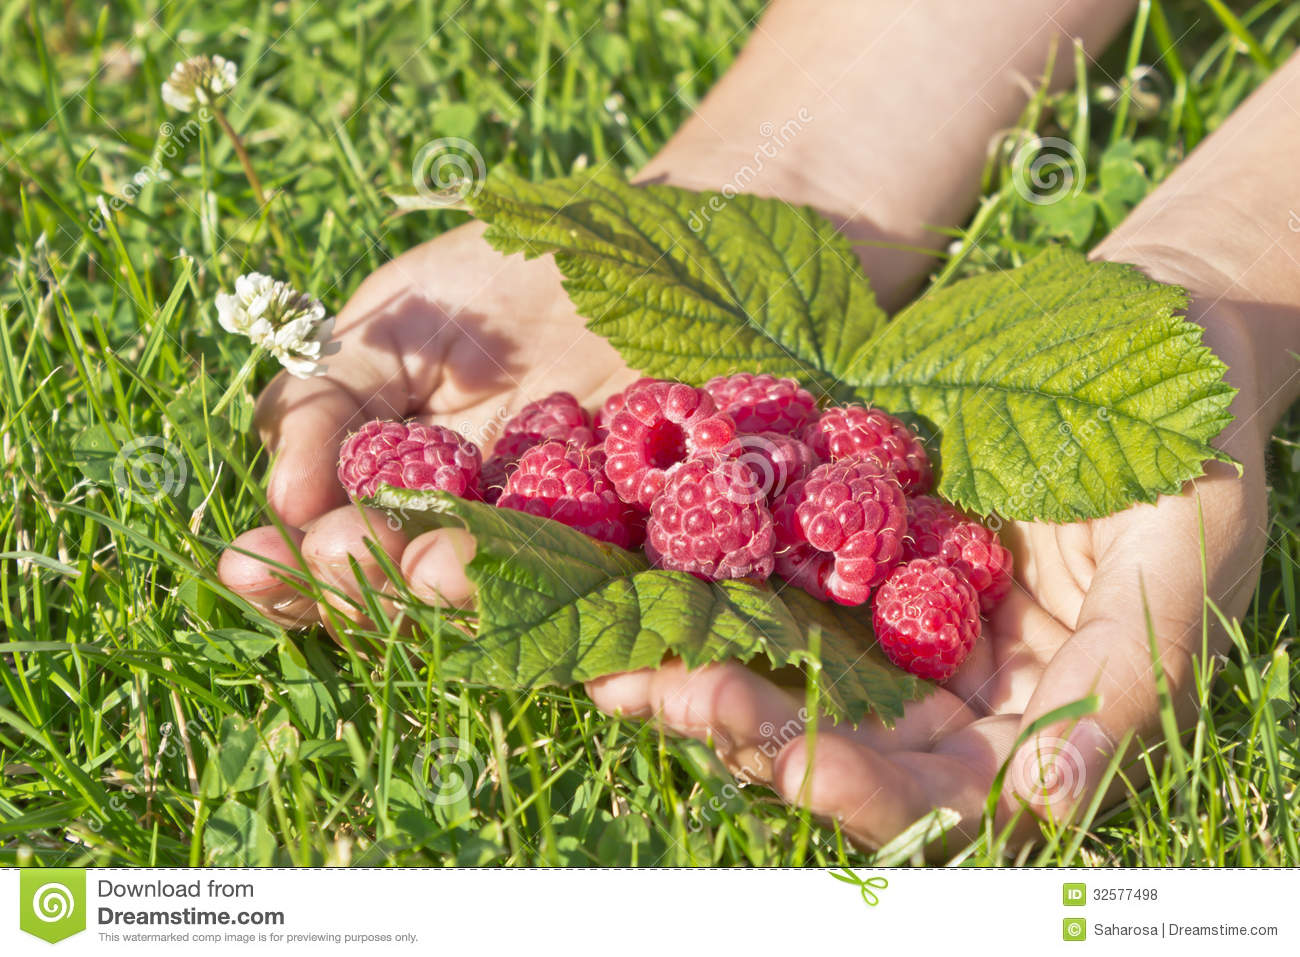 http://thumbs.dreamstime.com/z/raspberry-hands-beautiful-ripe-raspberries-children-s-32577498.jpg